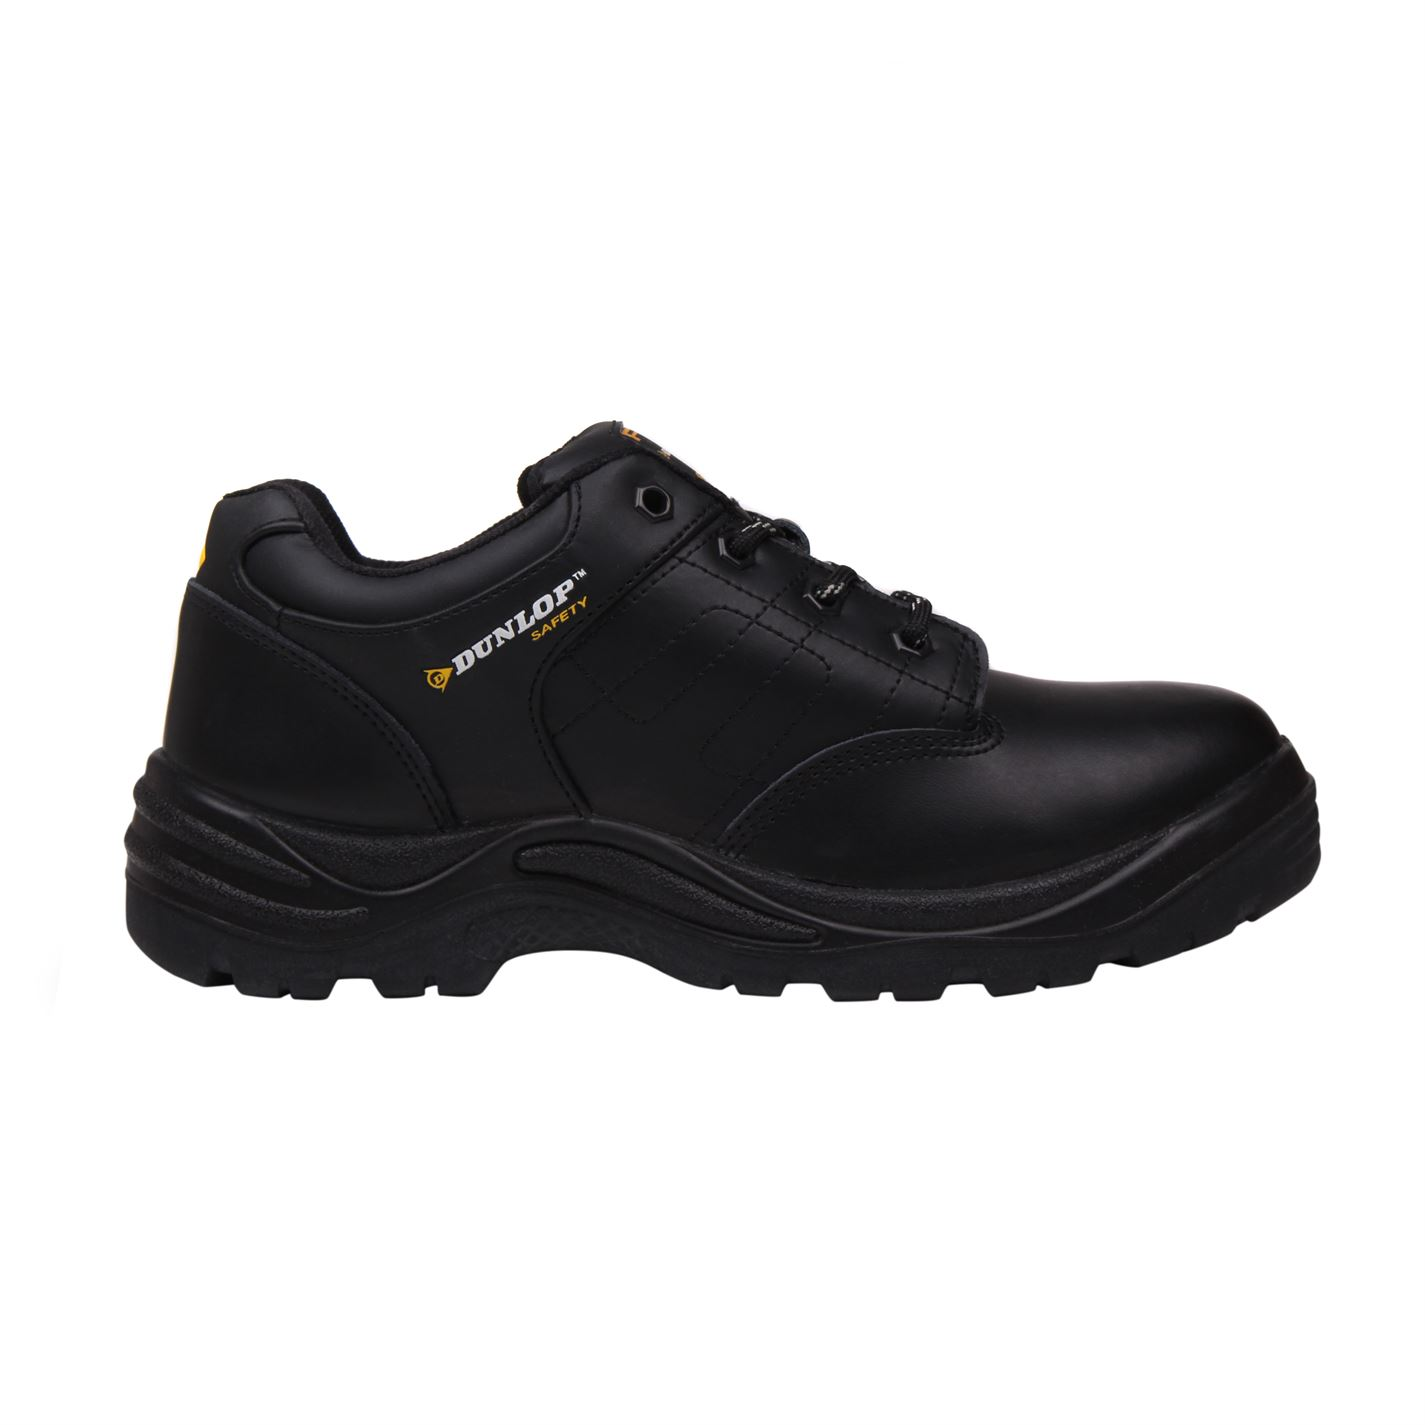 Dunlop Kansas Mens Steel Toe Cap Safety Boots Black